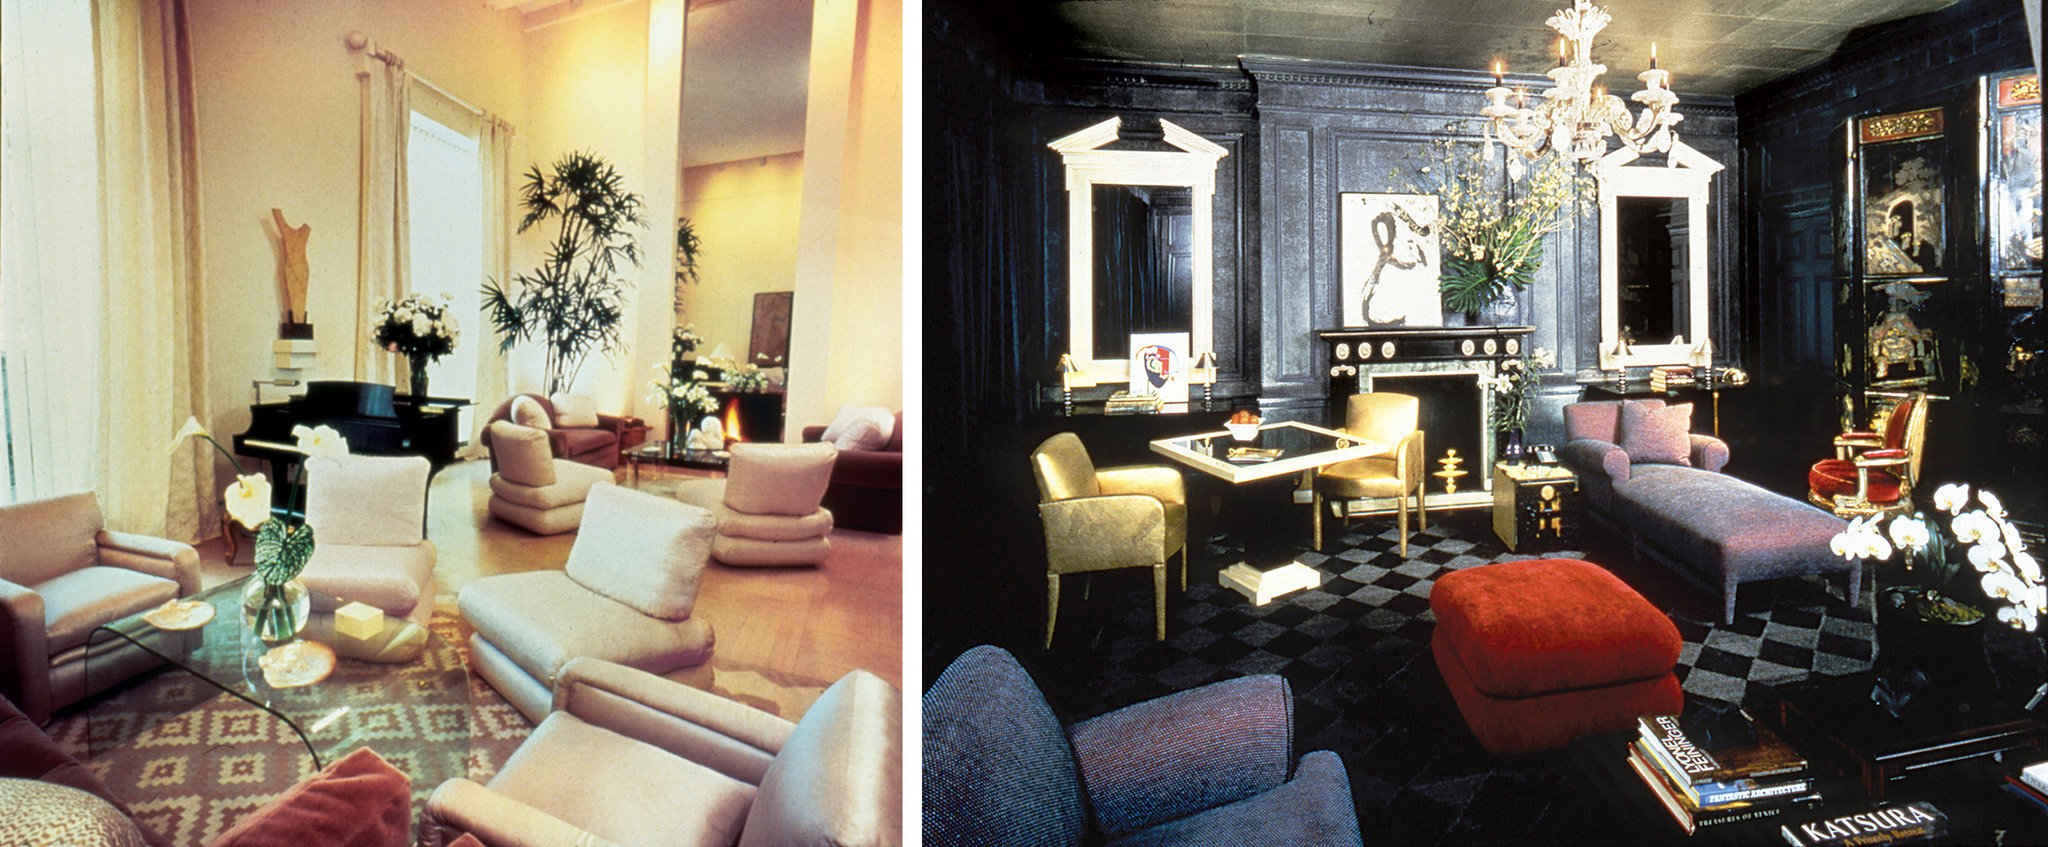 Angelo Donghia the Purist  The New York Times